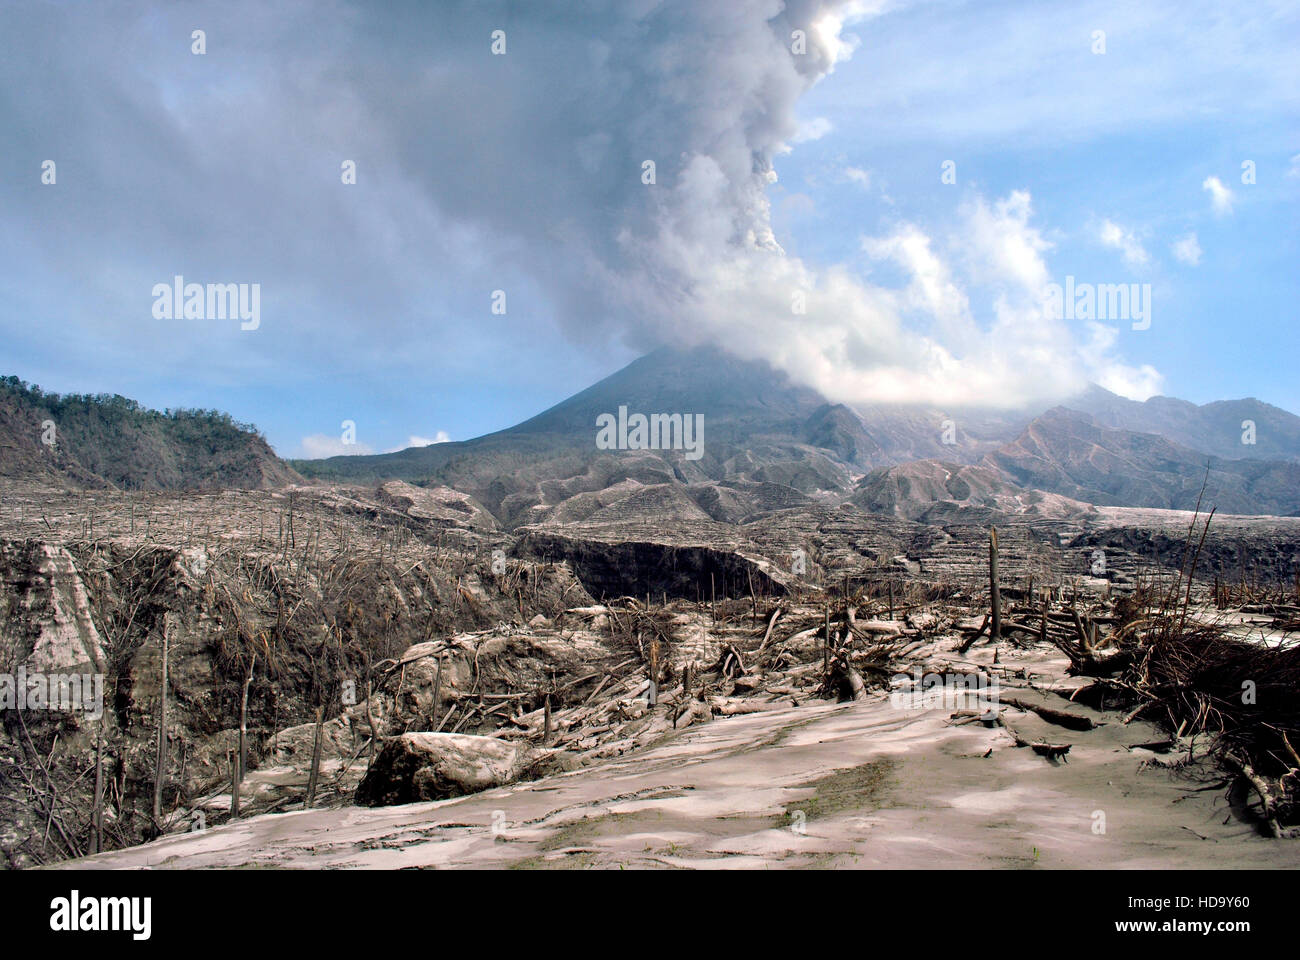 The 2010 eruptions of Mount Merapi began in late October 2010 when Mount Merapi in Central Java, Indonesia - Stock Image